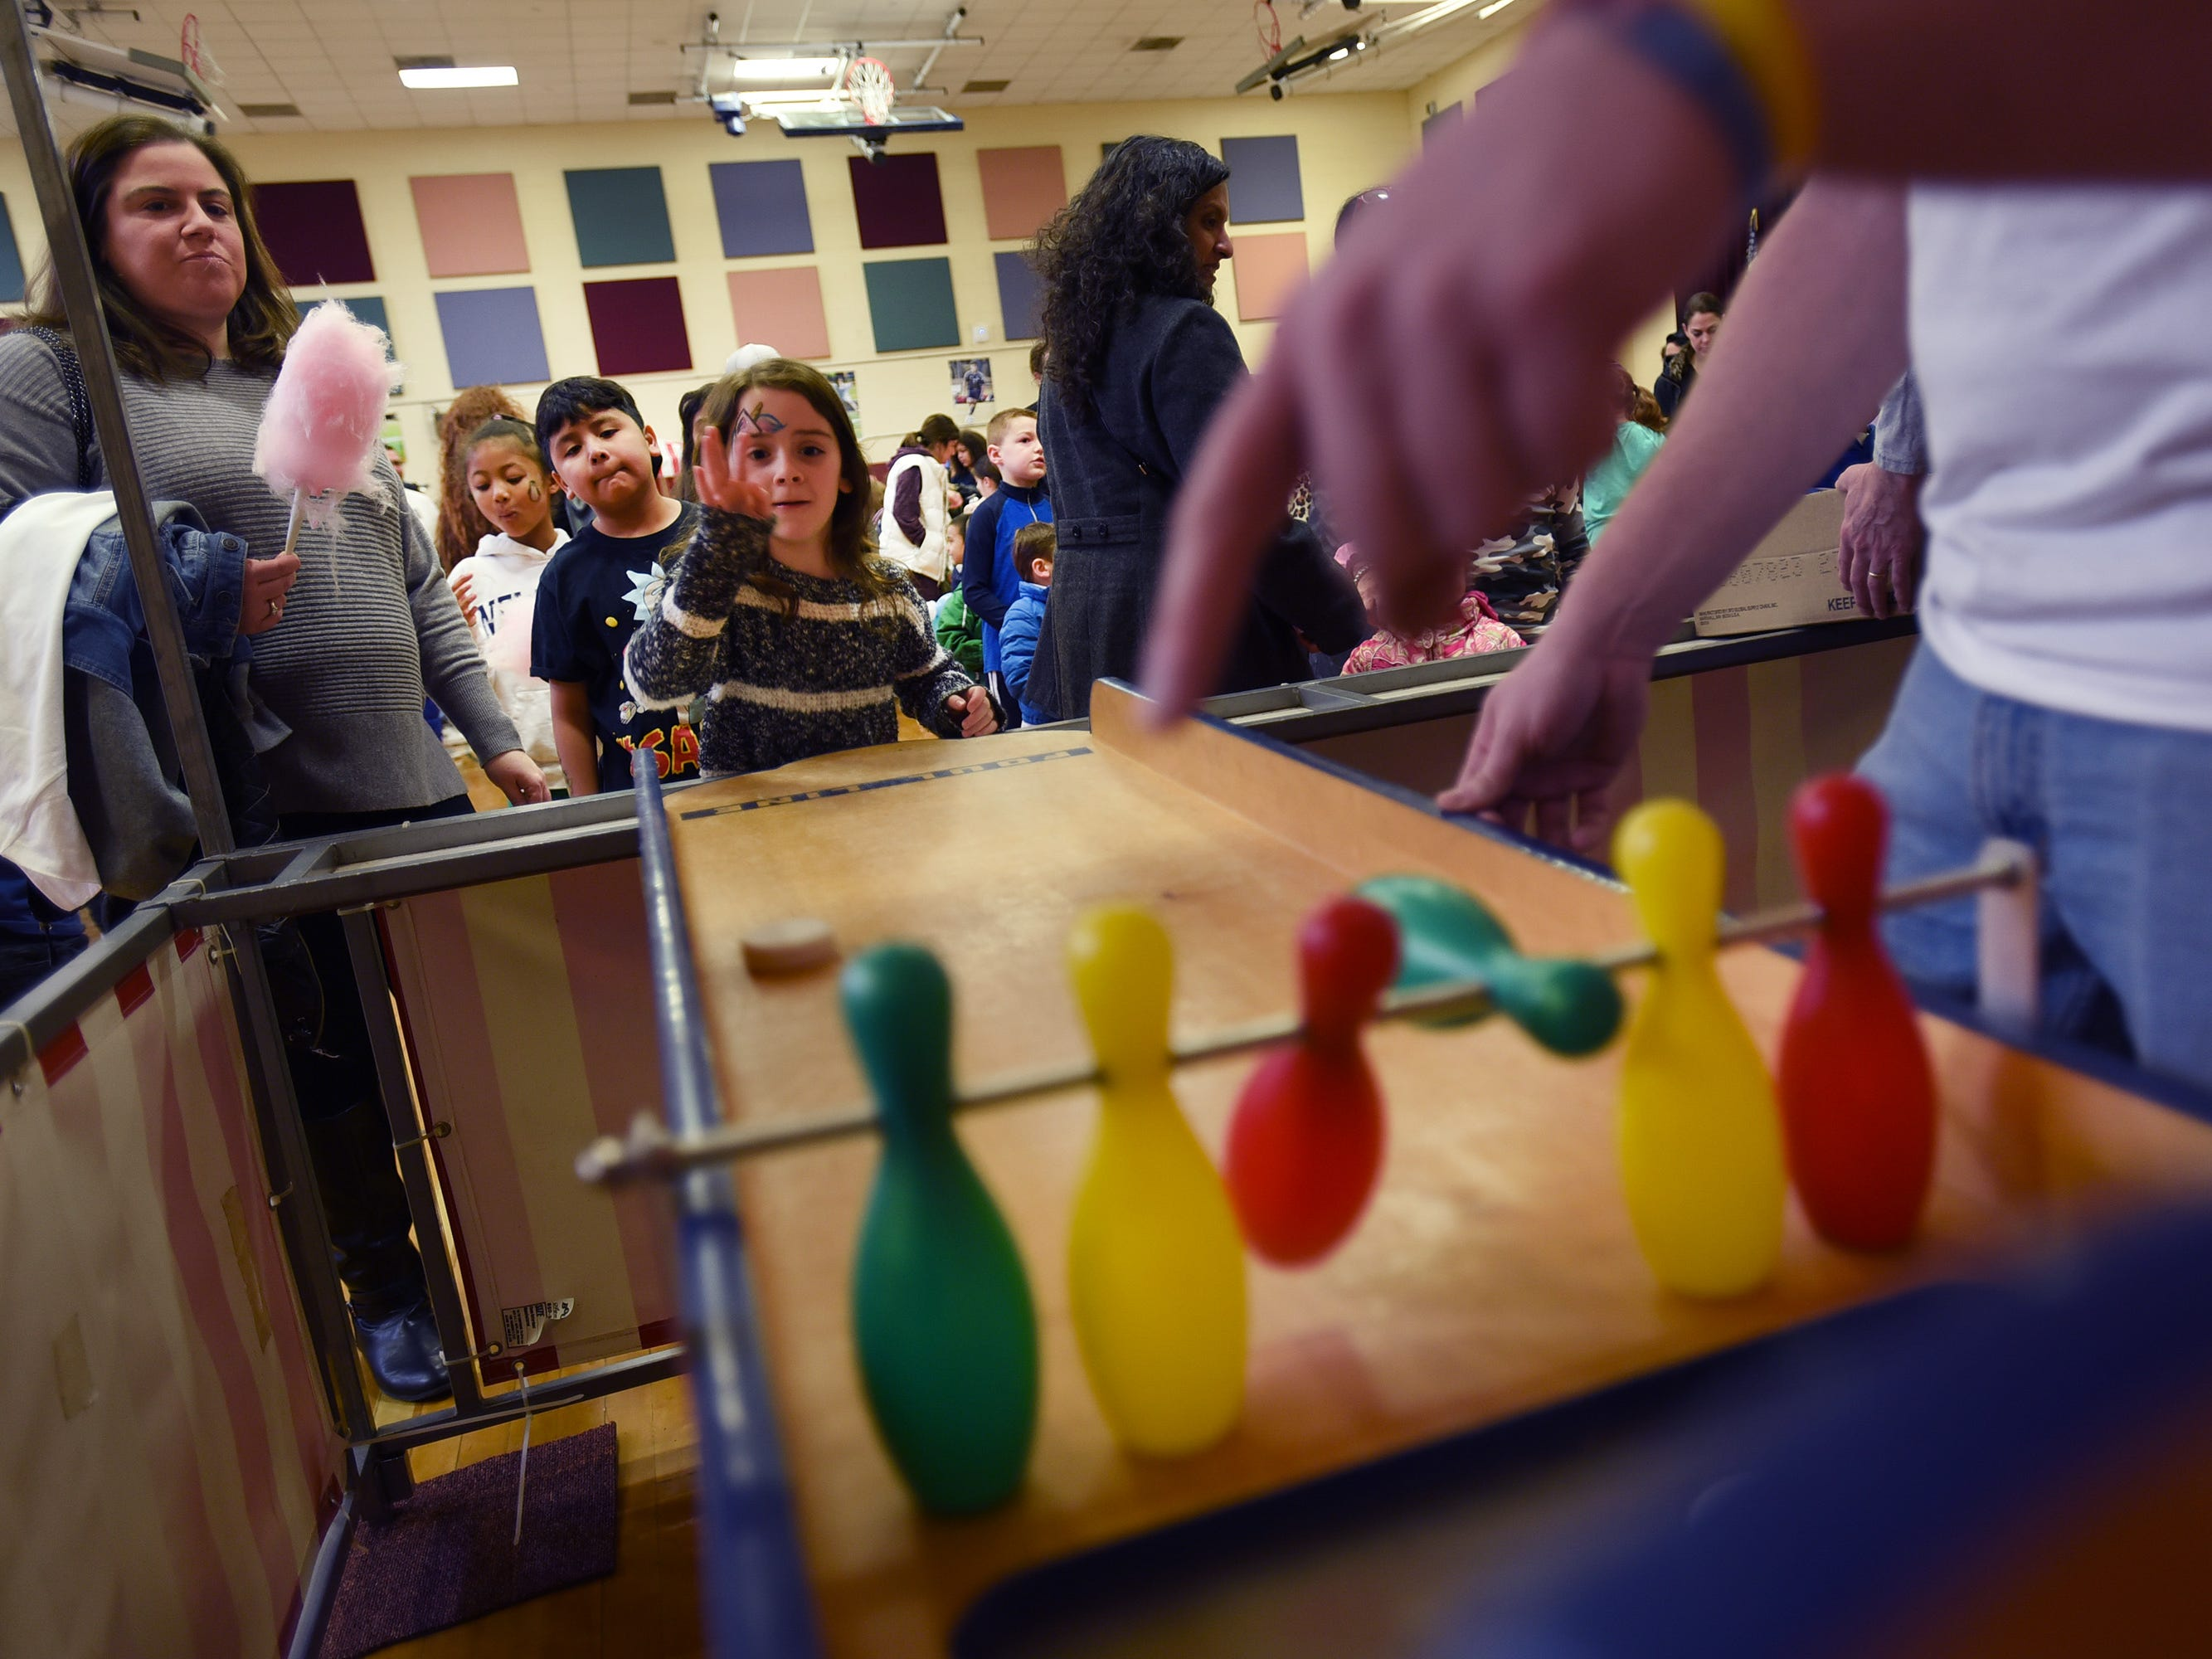 Avery Ben-Ami (age 8) of Rutherford, plays table bowling as her mother Bree (L) looks on during the 3rd annual March Madness Food & Fun Day to benefit the Rutherford Food Pantry hosted by the Rutherford Education Association at Washington School in Rutherford on 03/23/2019.